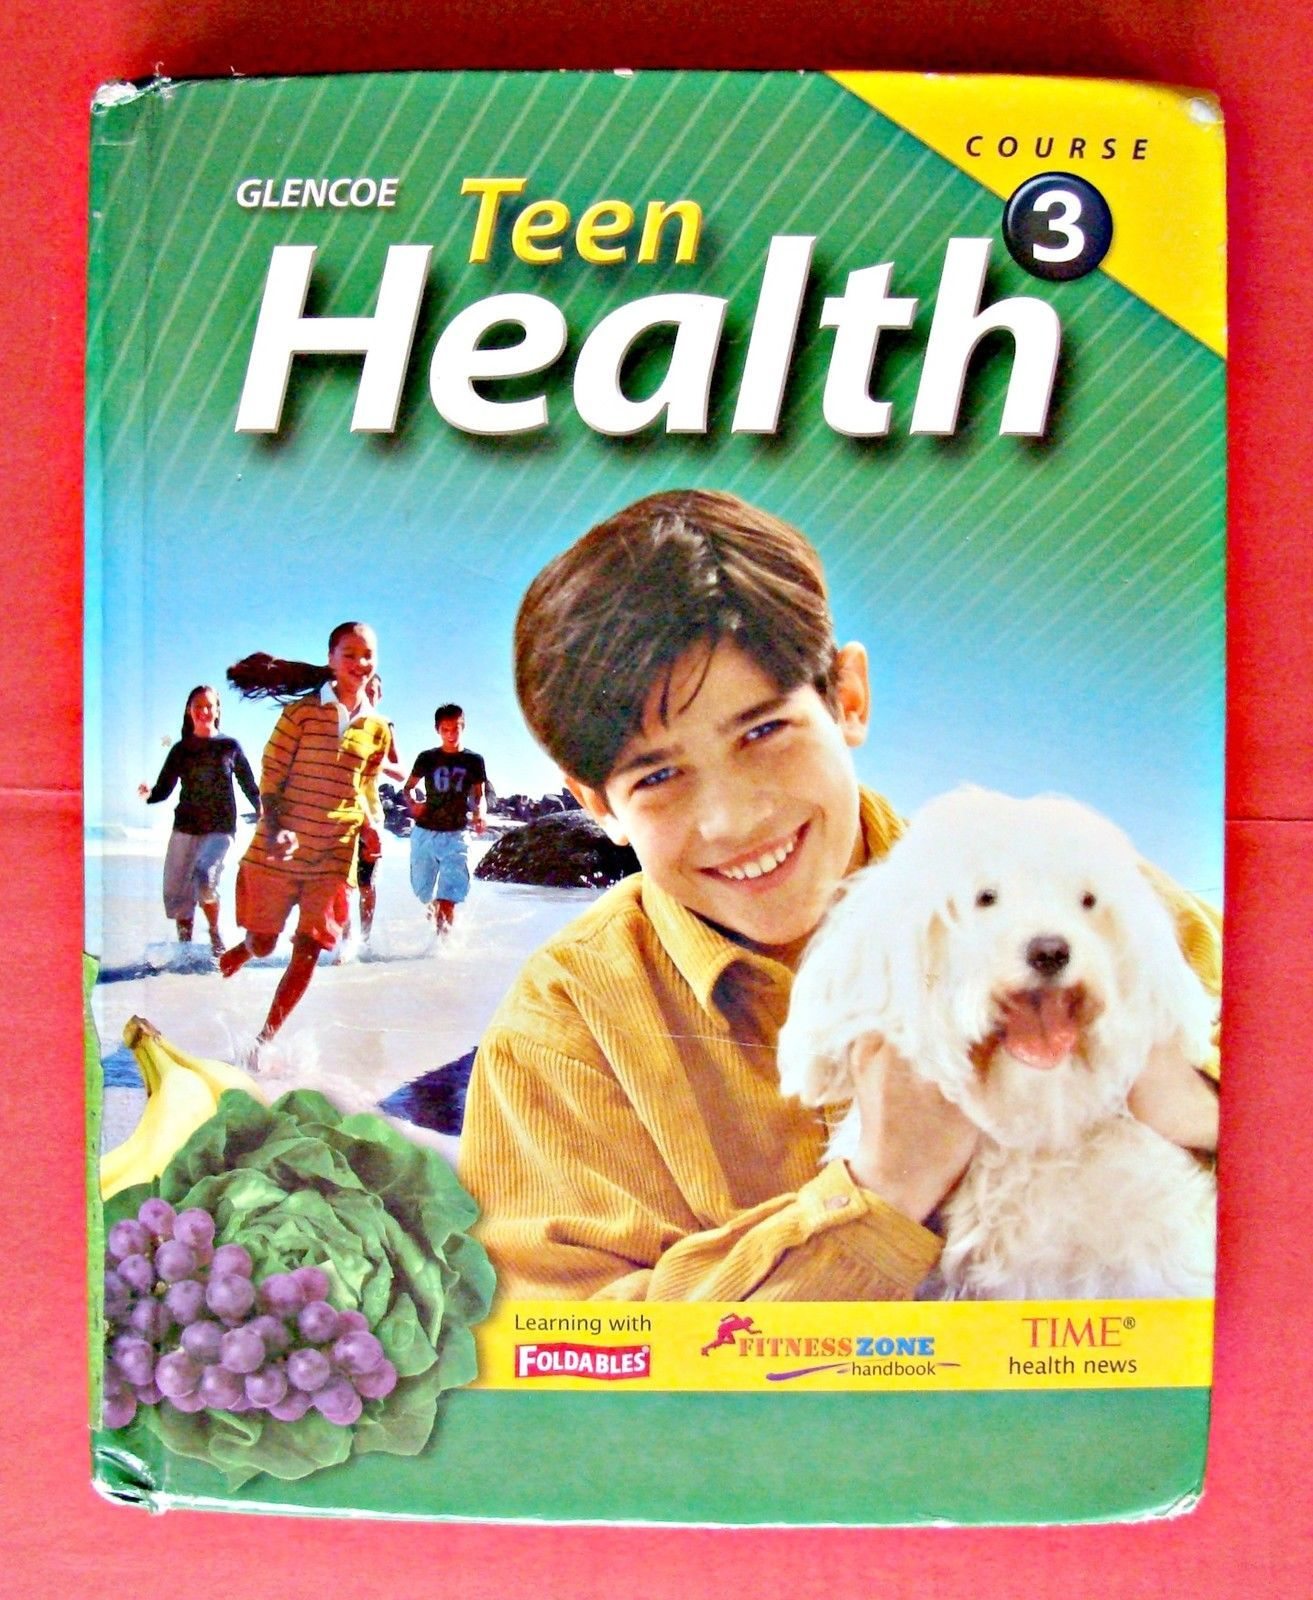 Glencoe Teen Health Course 3 Middle School Textbook Book 7